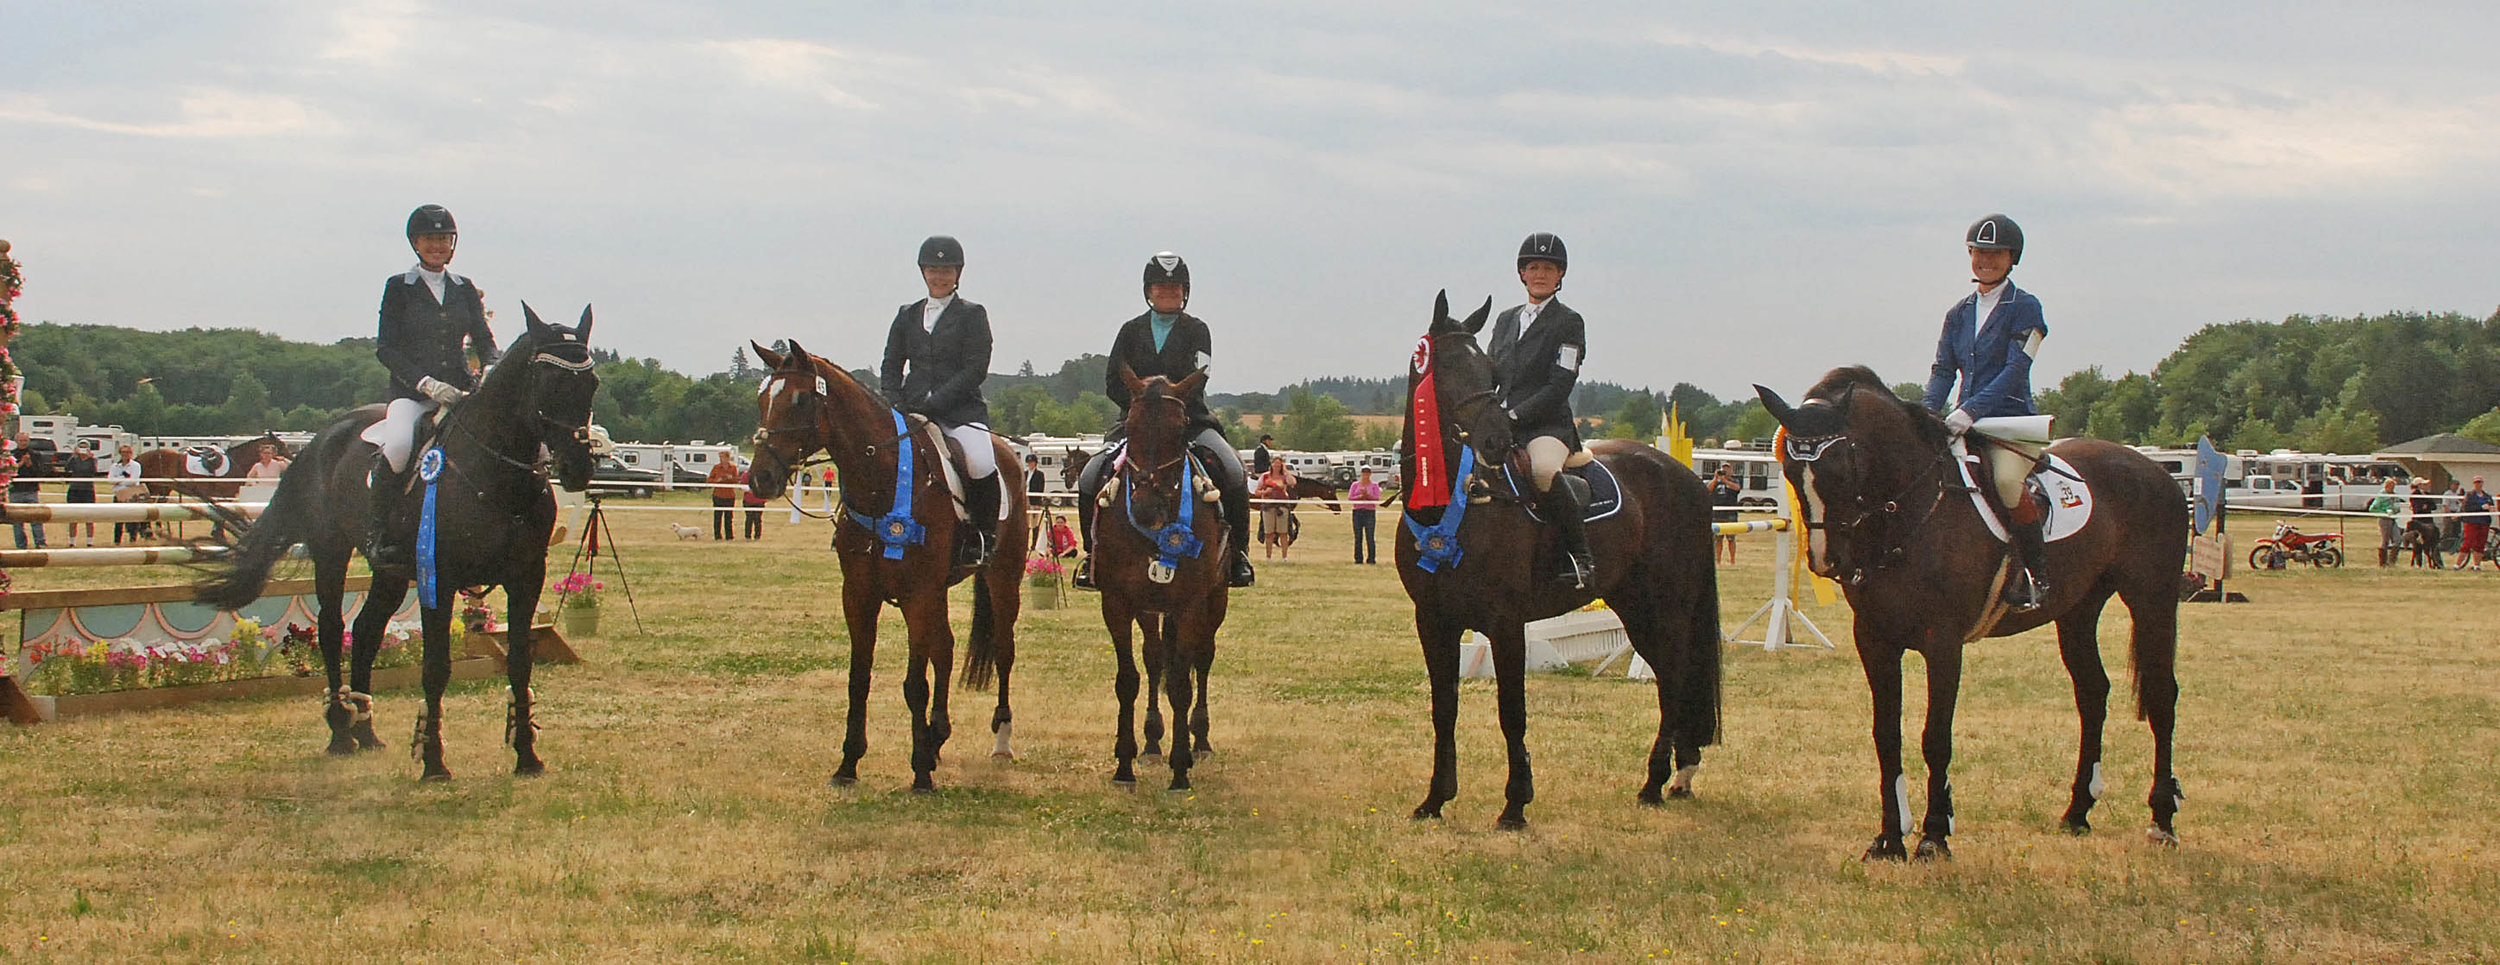 2015 Adult Team Challenge Winners at the Inavale Farm Horse Trials